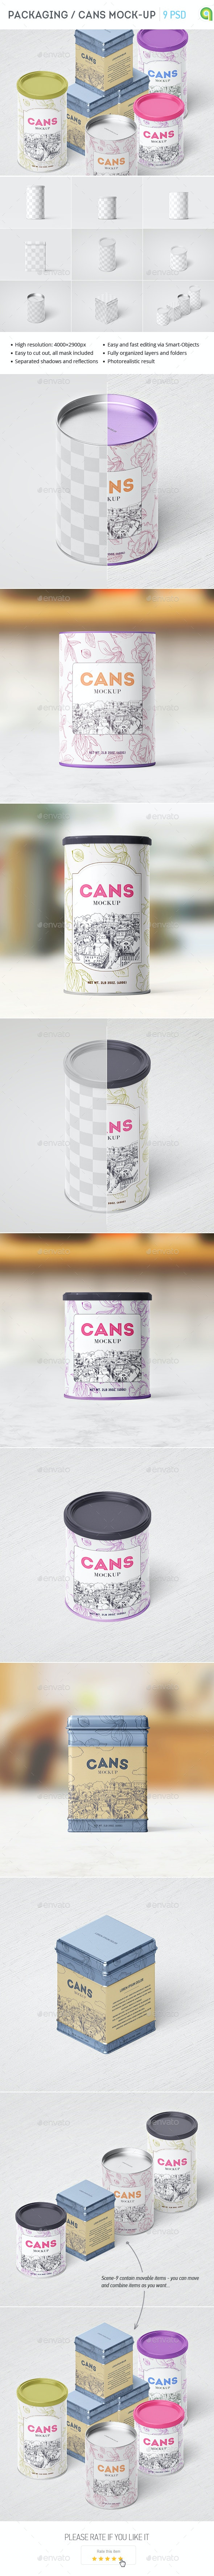 Packaging / Can Mockup - Food and Drink Packaging